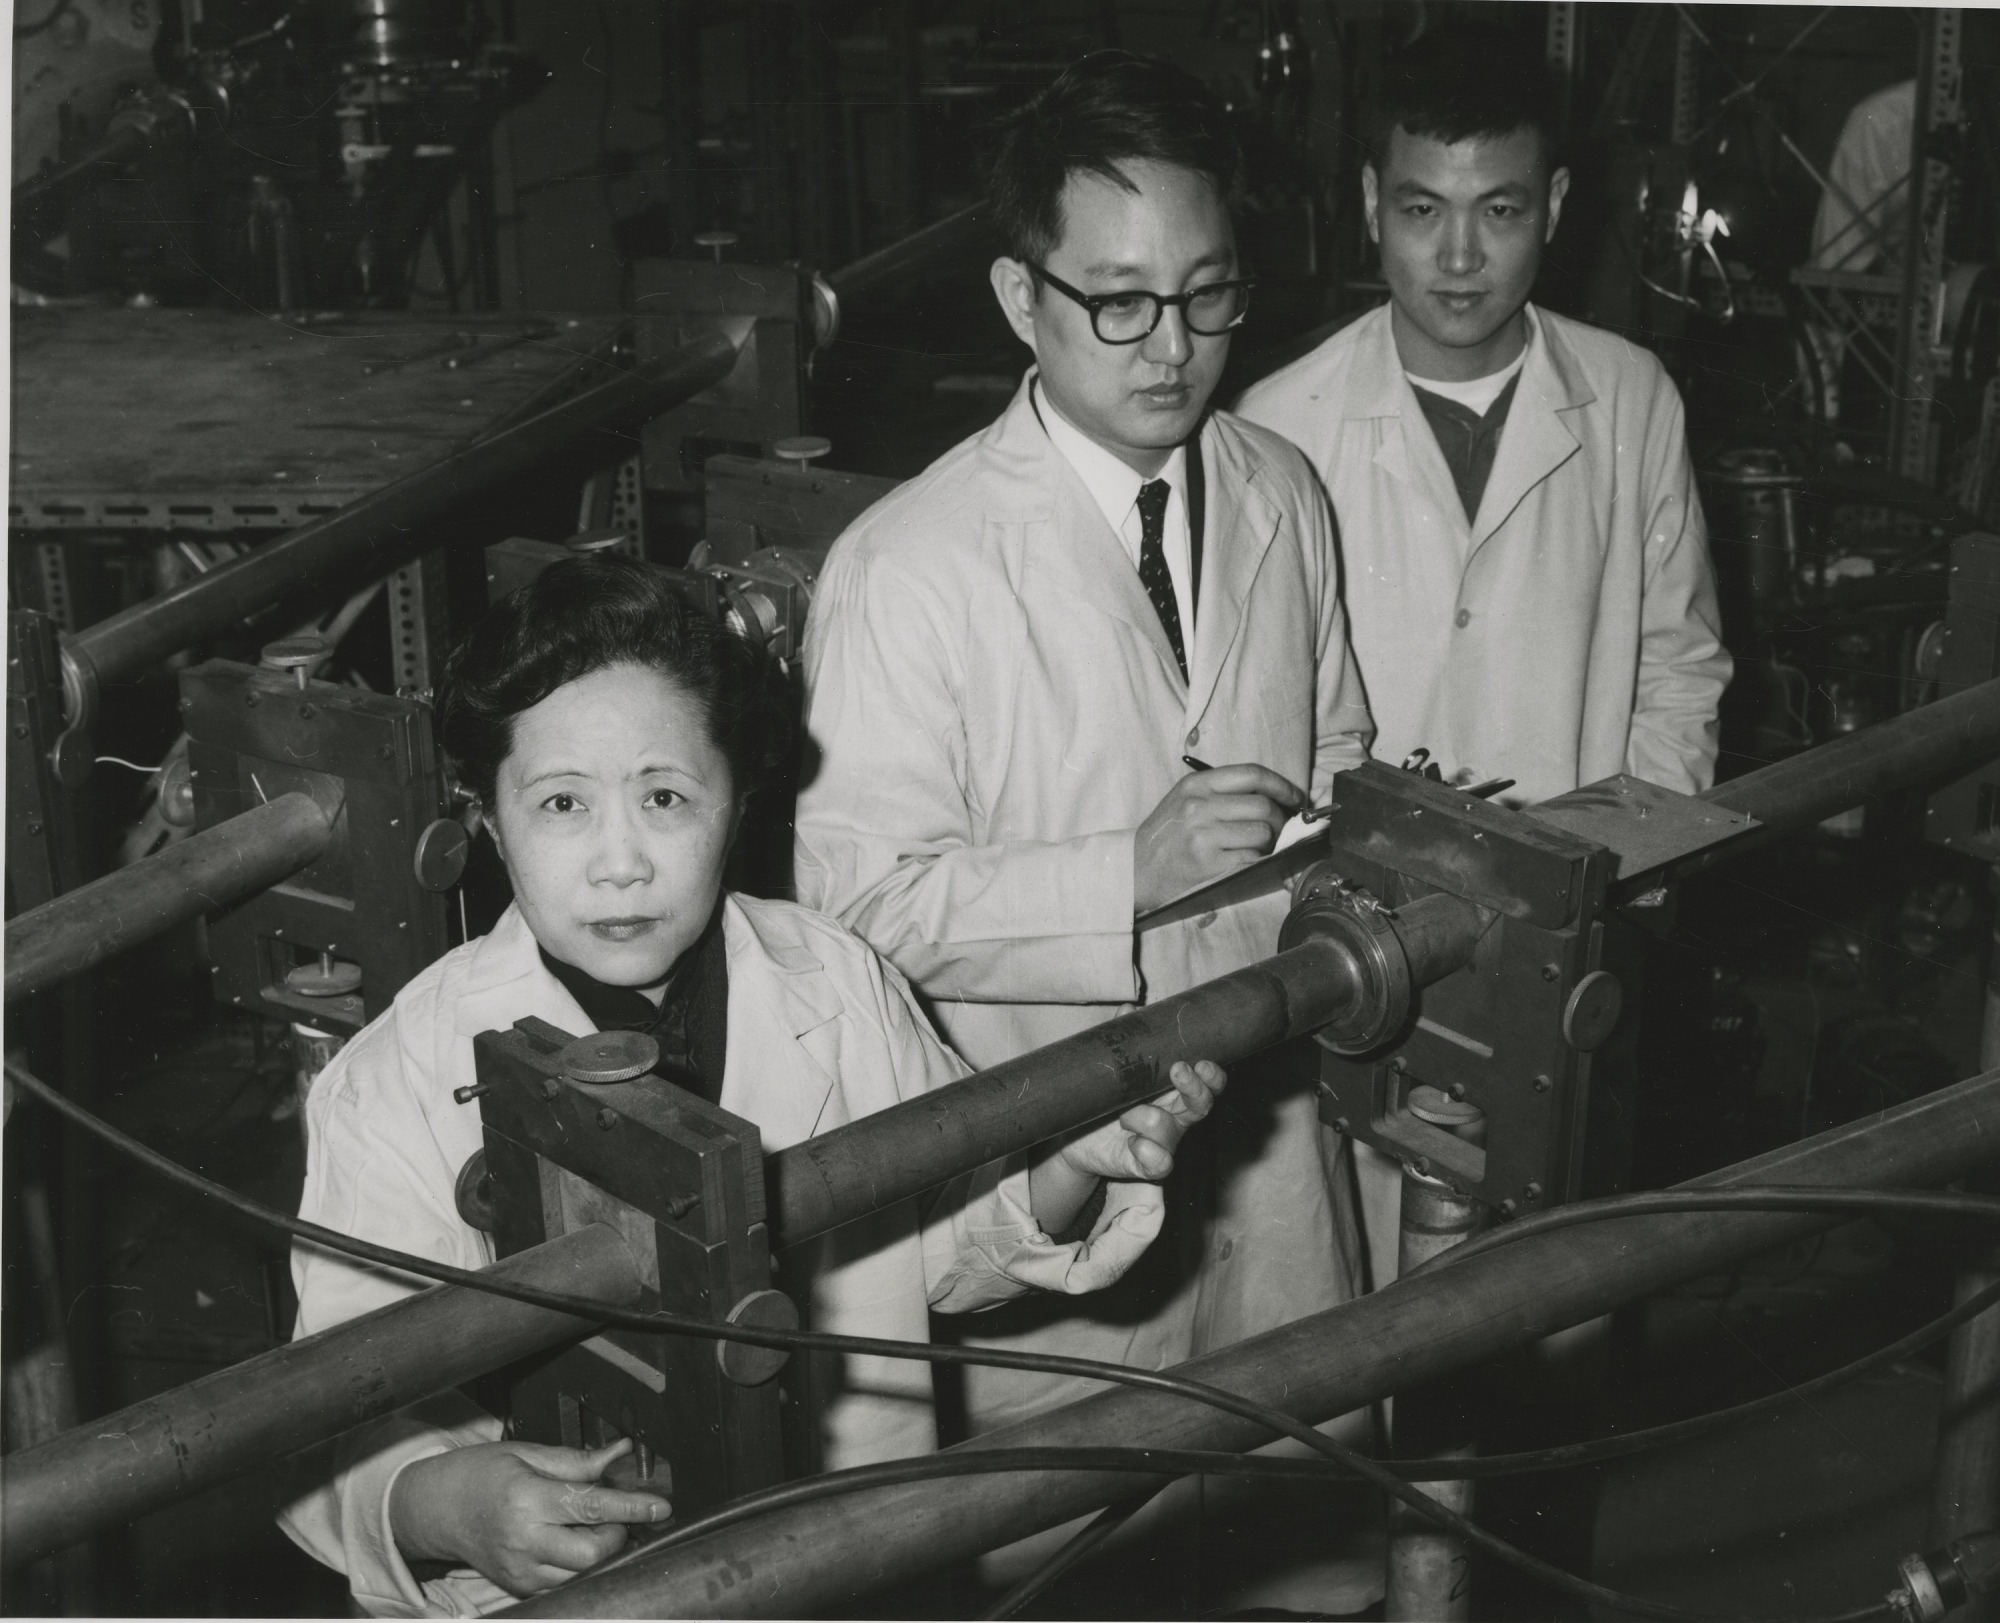 left to right: Chien-shiung Wu (1912-1997), Y.K. Lee, and L.W. Mo